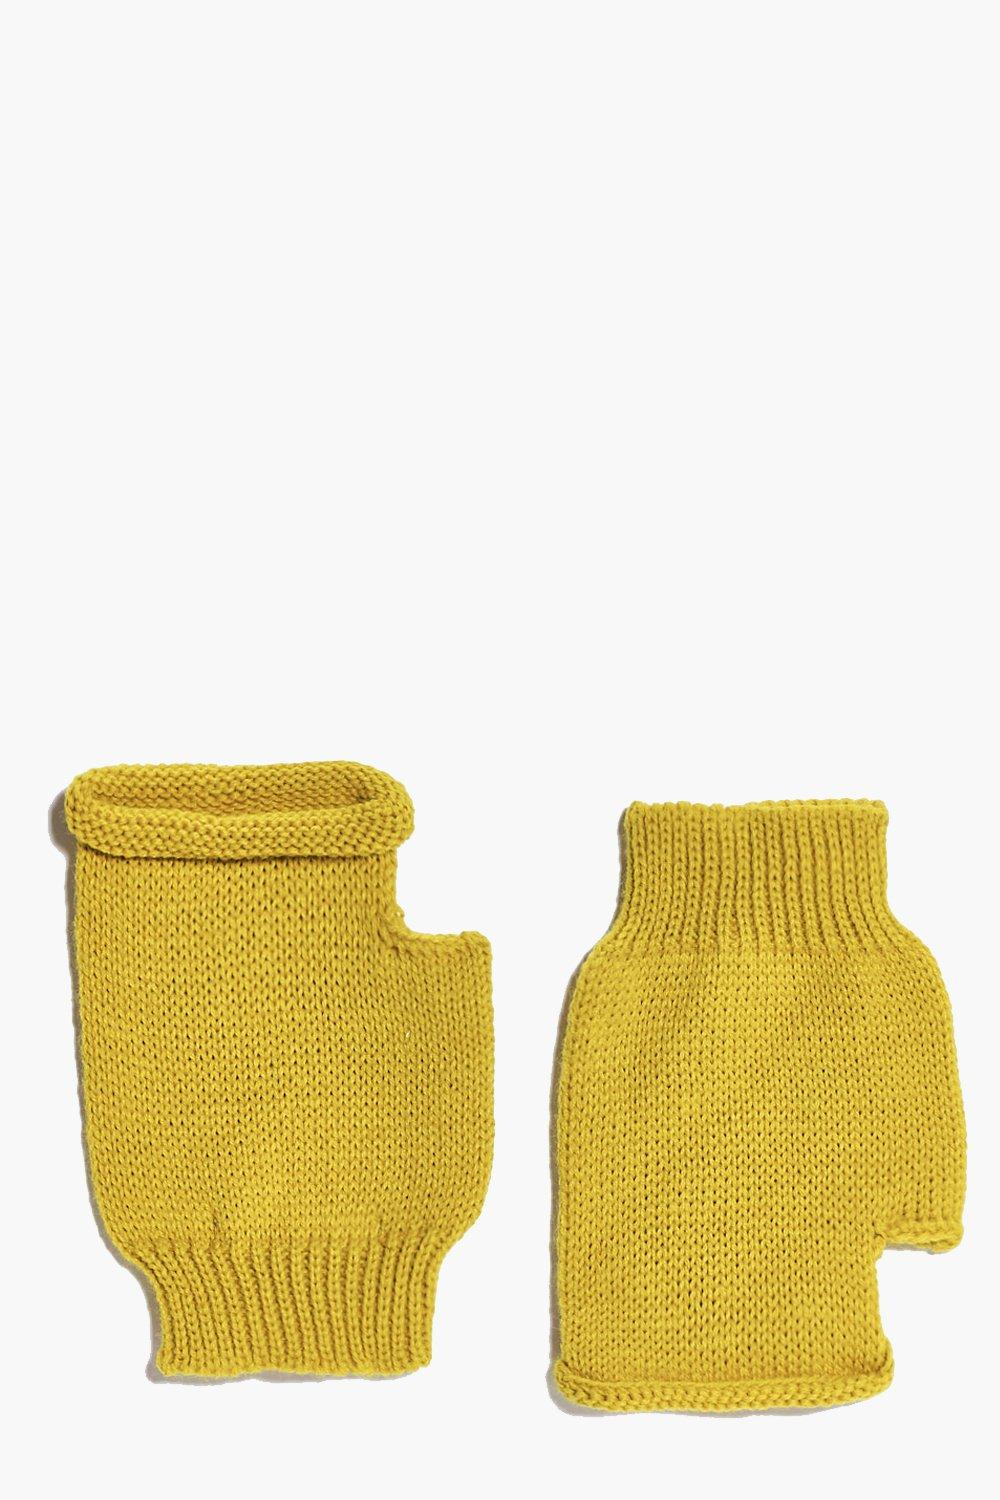 Fingerless Soft Knit Mittens  mustard